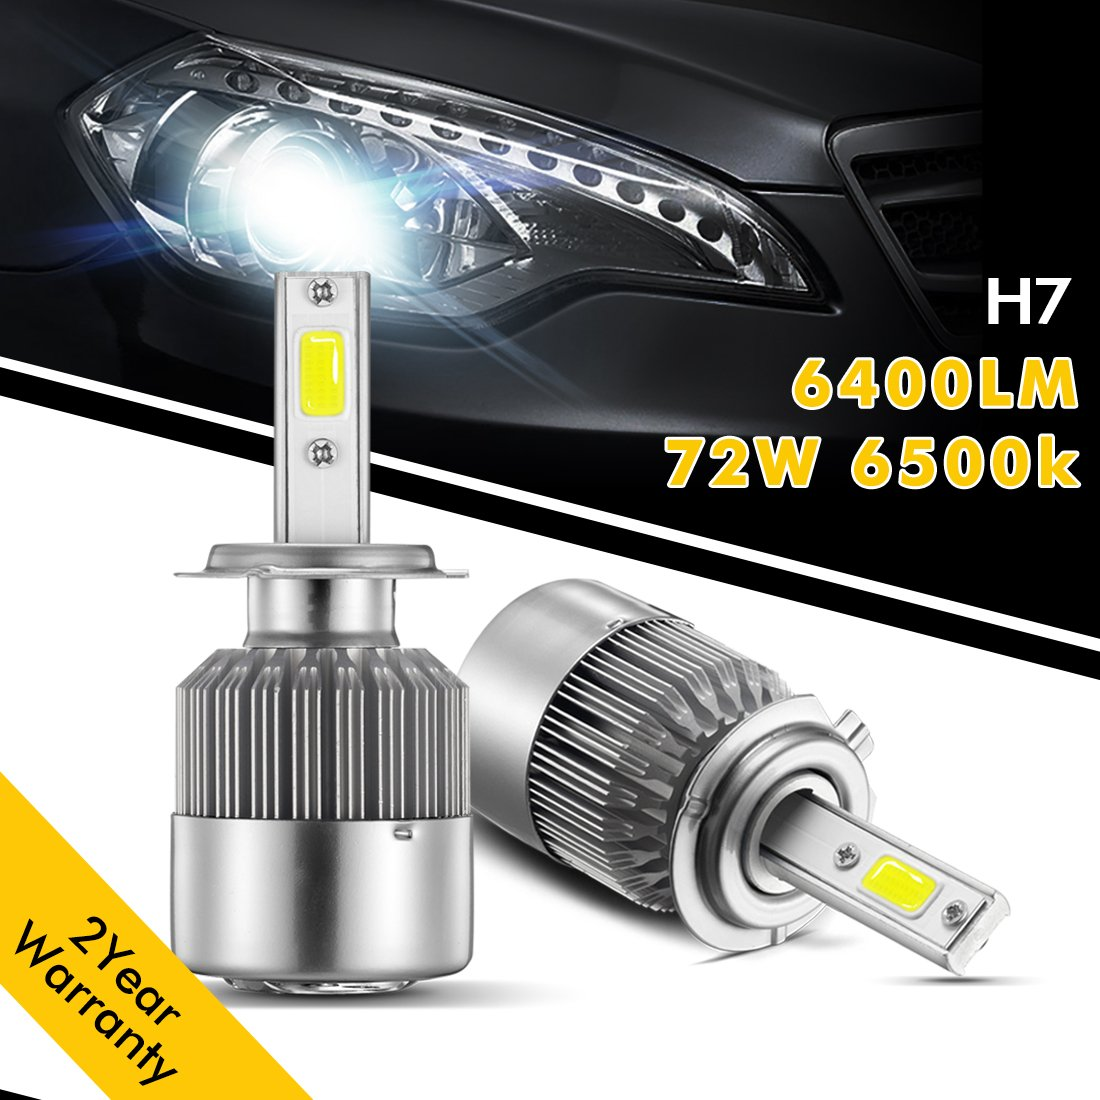 Led Replacement Headlight Bulbs >> Cheap Led Replacement Headlight Bulbs For Cars Find Led